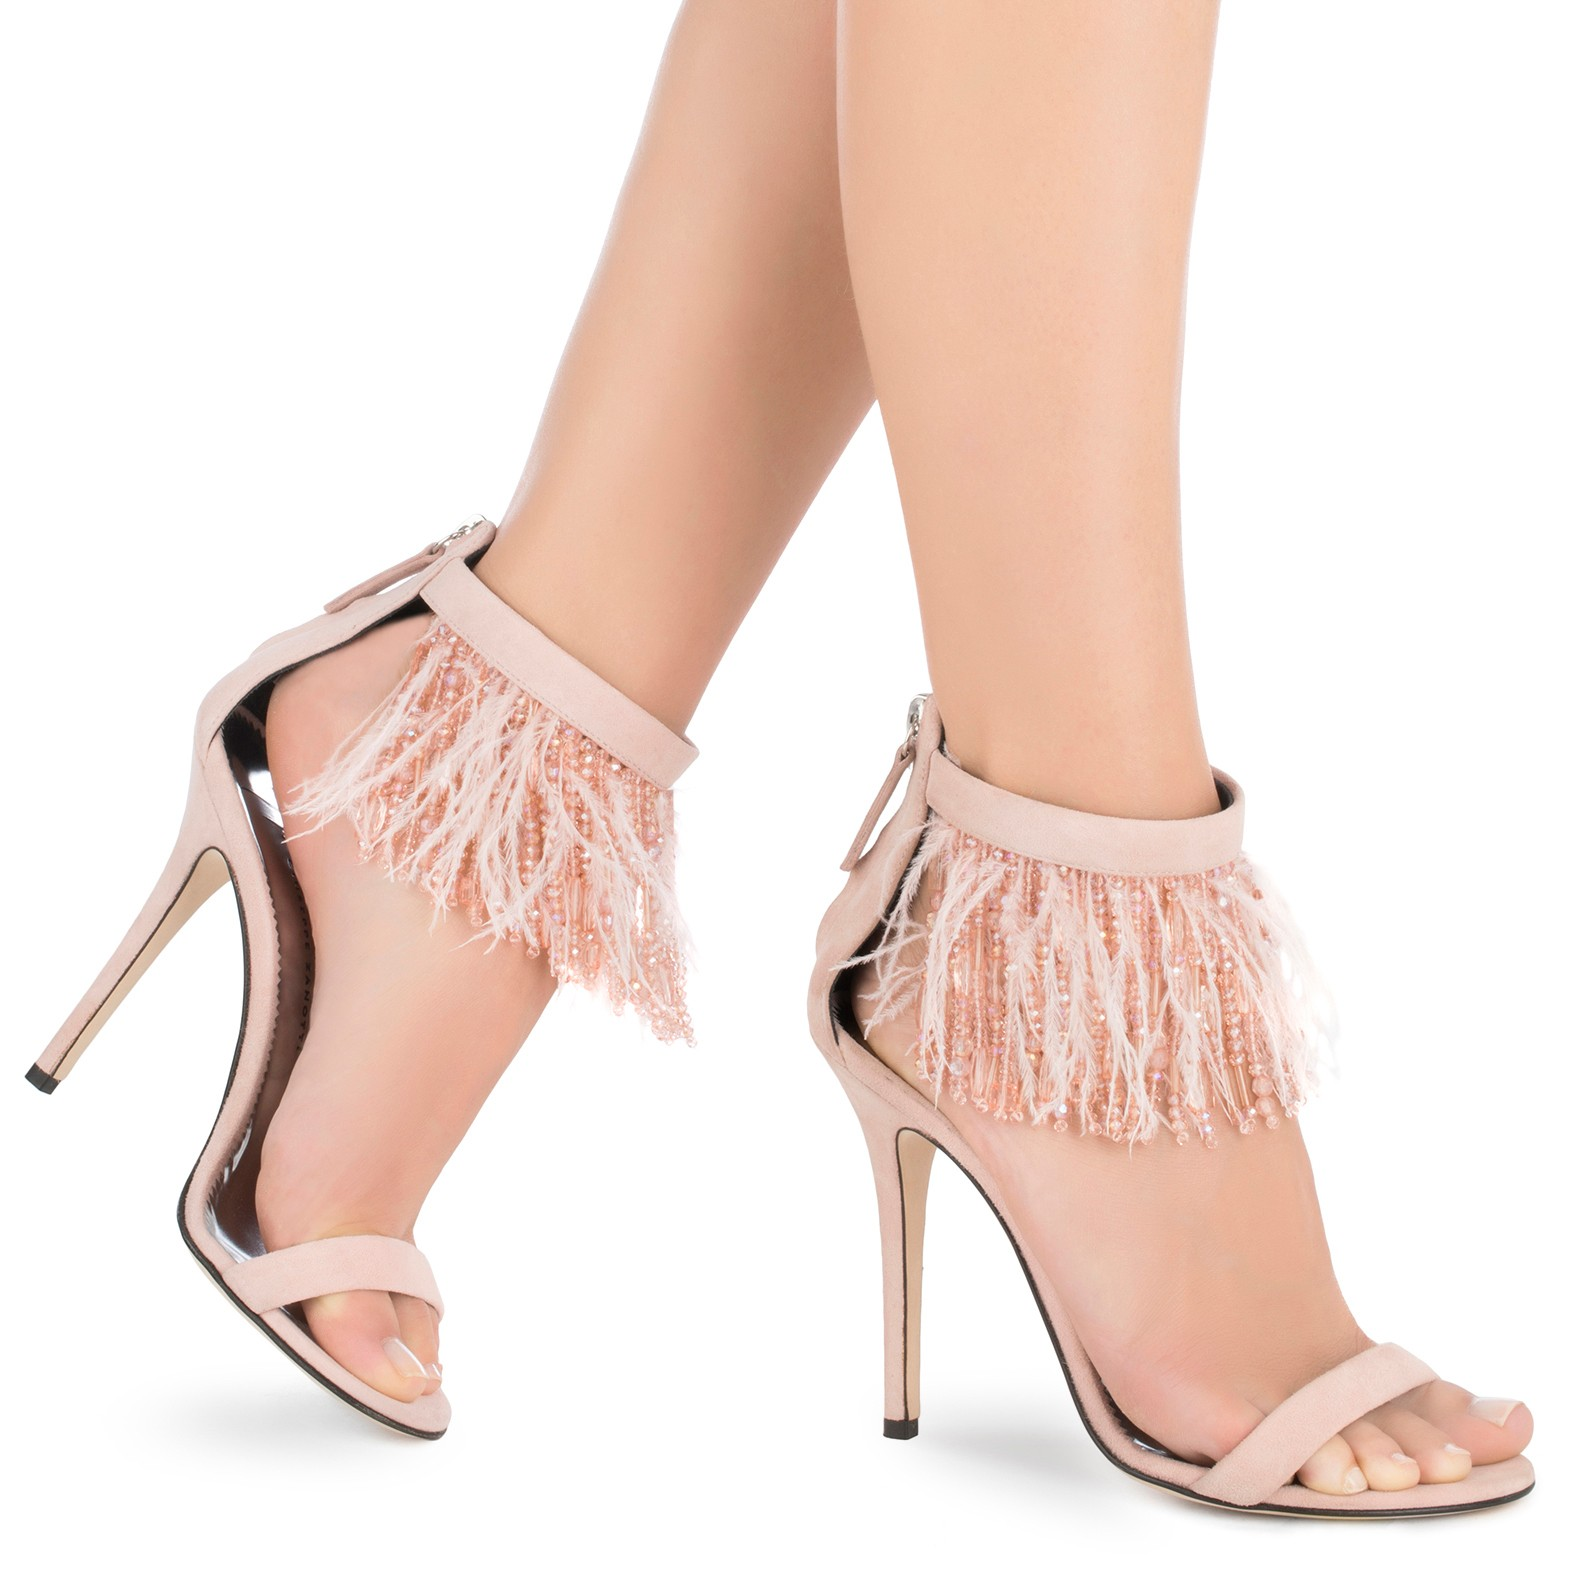 Giuseppe Zanotti - _Beau Rose Sandals - Feather and Bead Sandals - Italian Shoe Brands We Love - - made in italy - italian shoes - luxury shoes - famous italian shoe designers